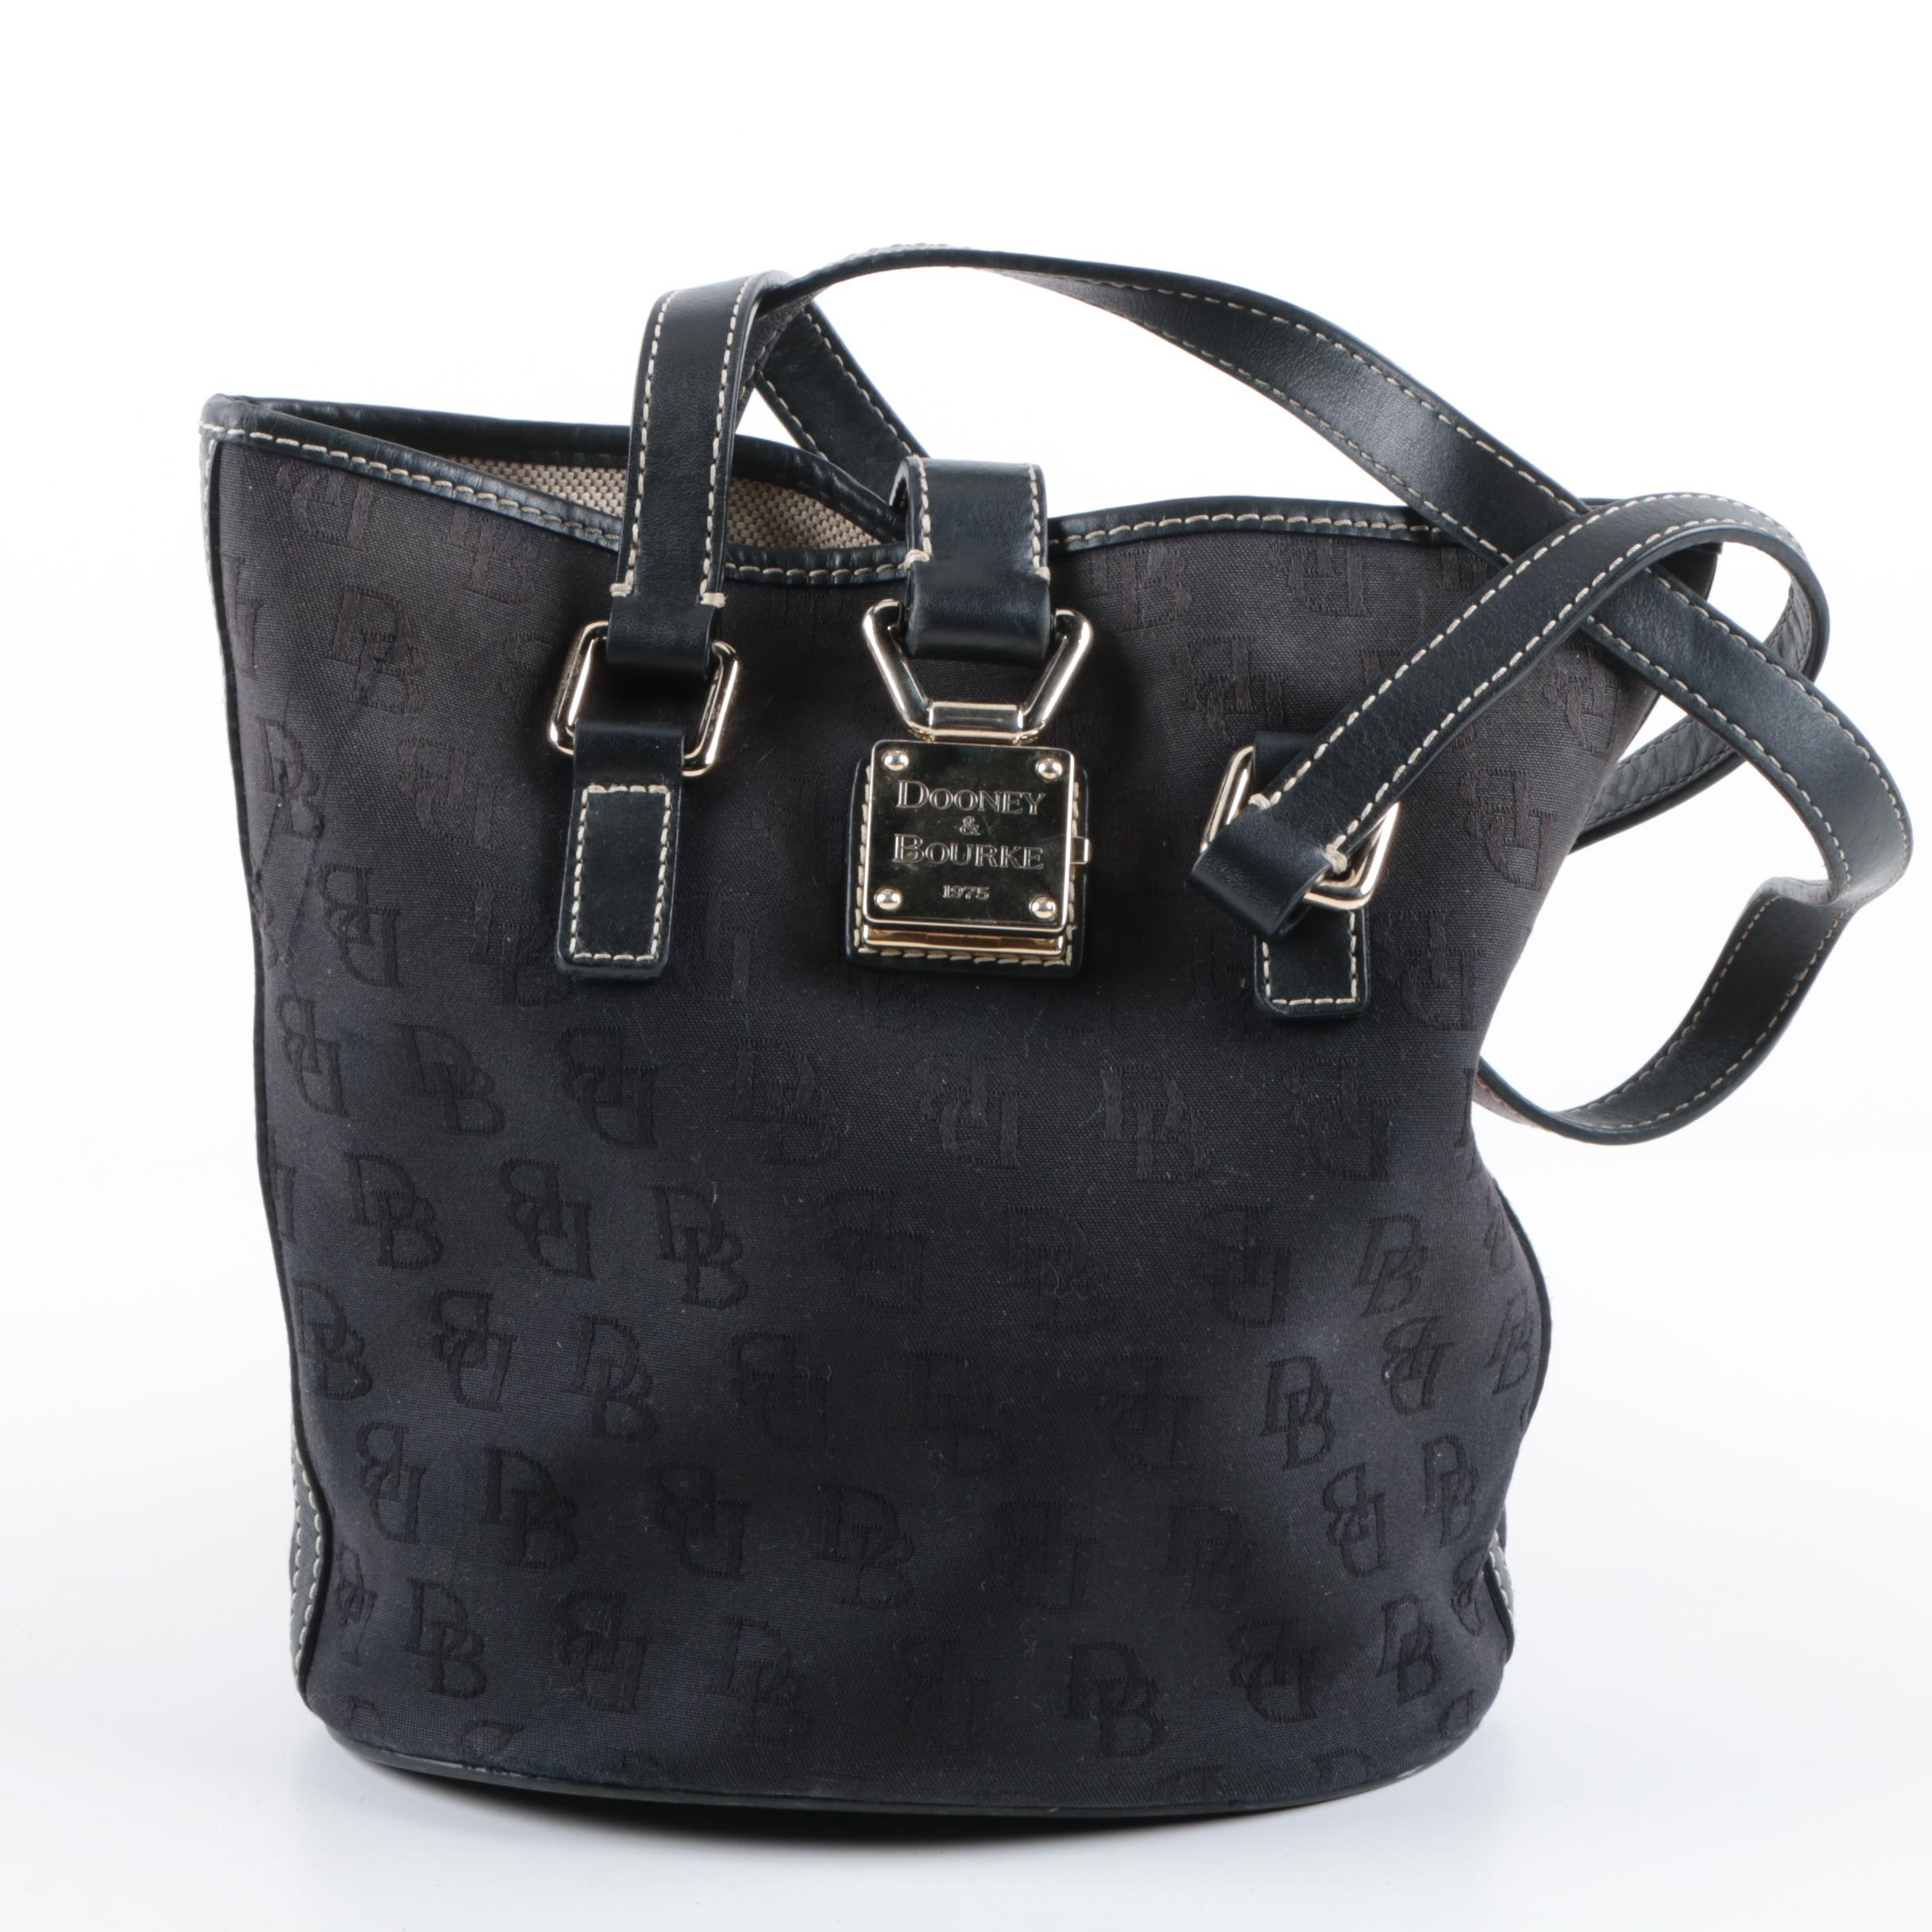 Dooney & Bourke Signature Black Canvas Bucket Bag